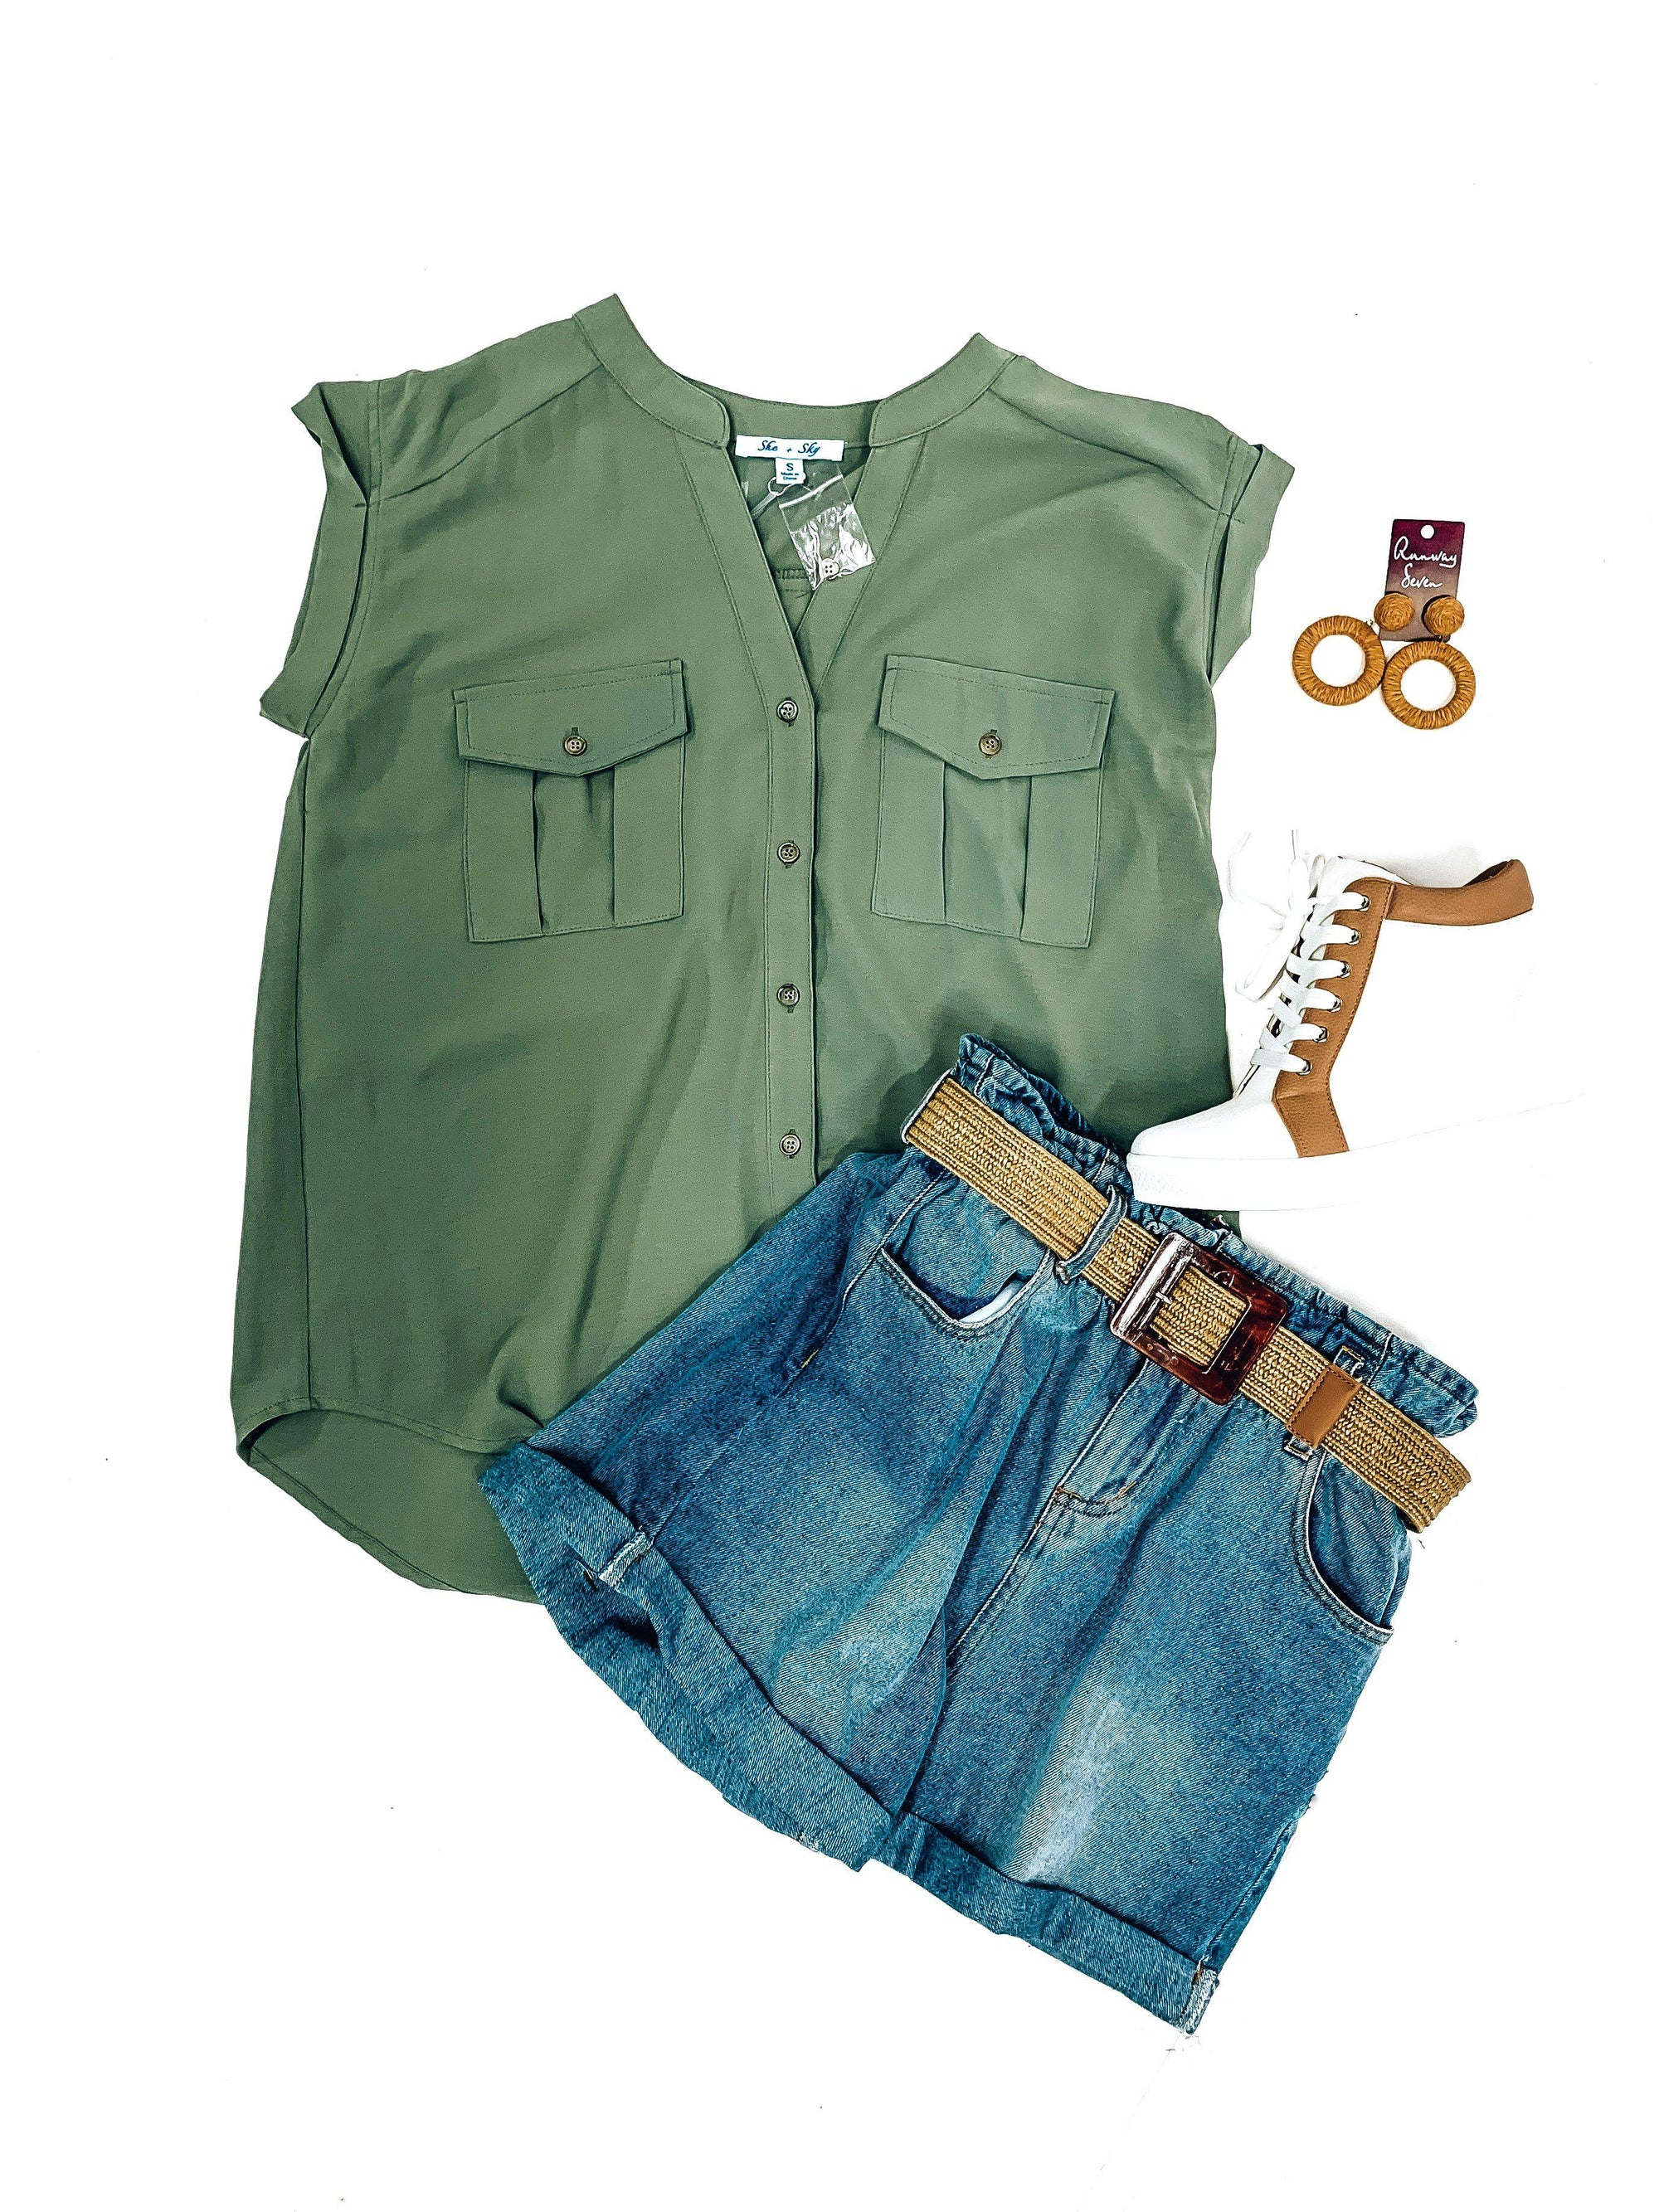 Safari Trip Top-Women's TOP-New Arrivals-Runway Seven